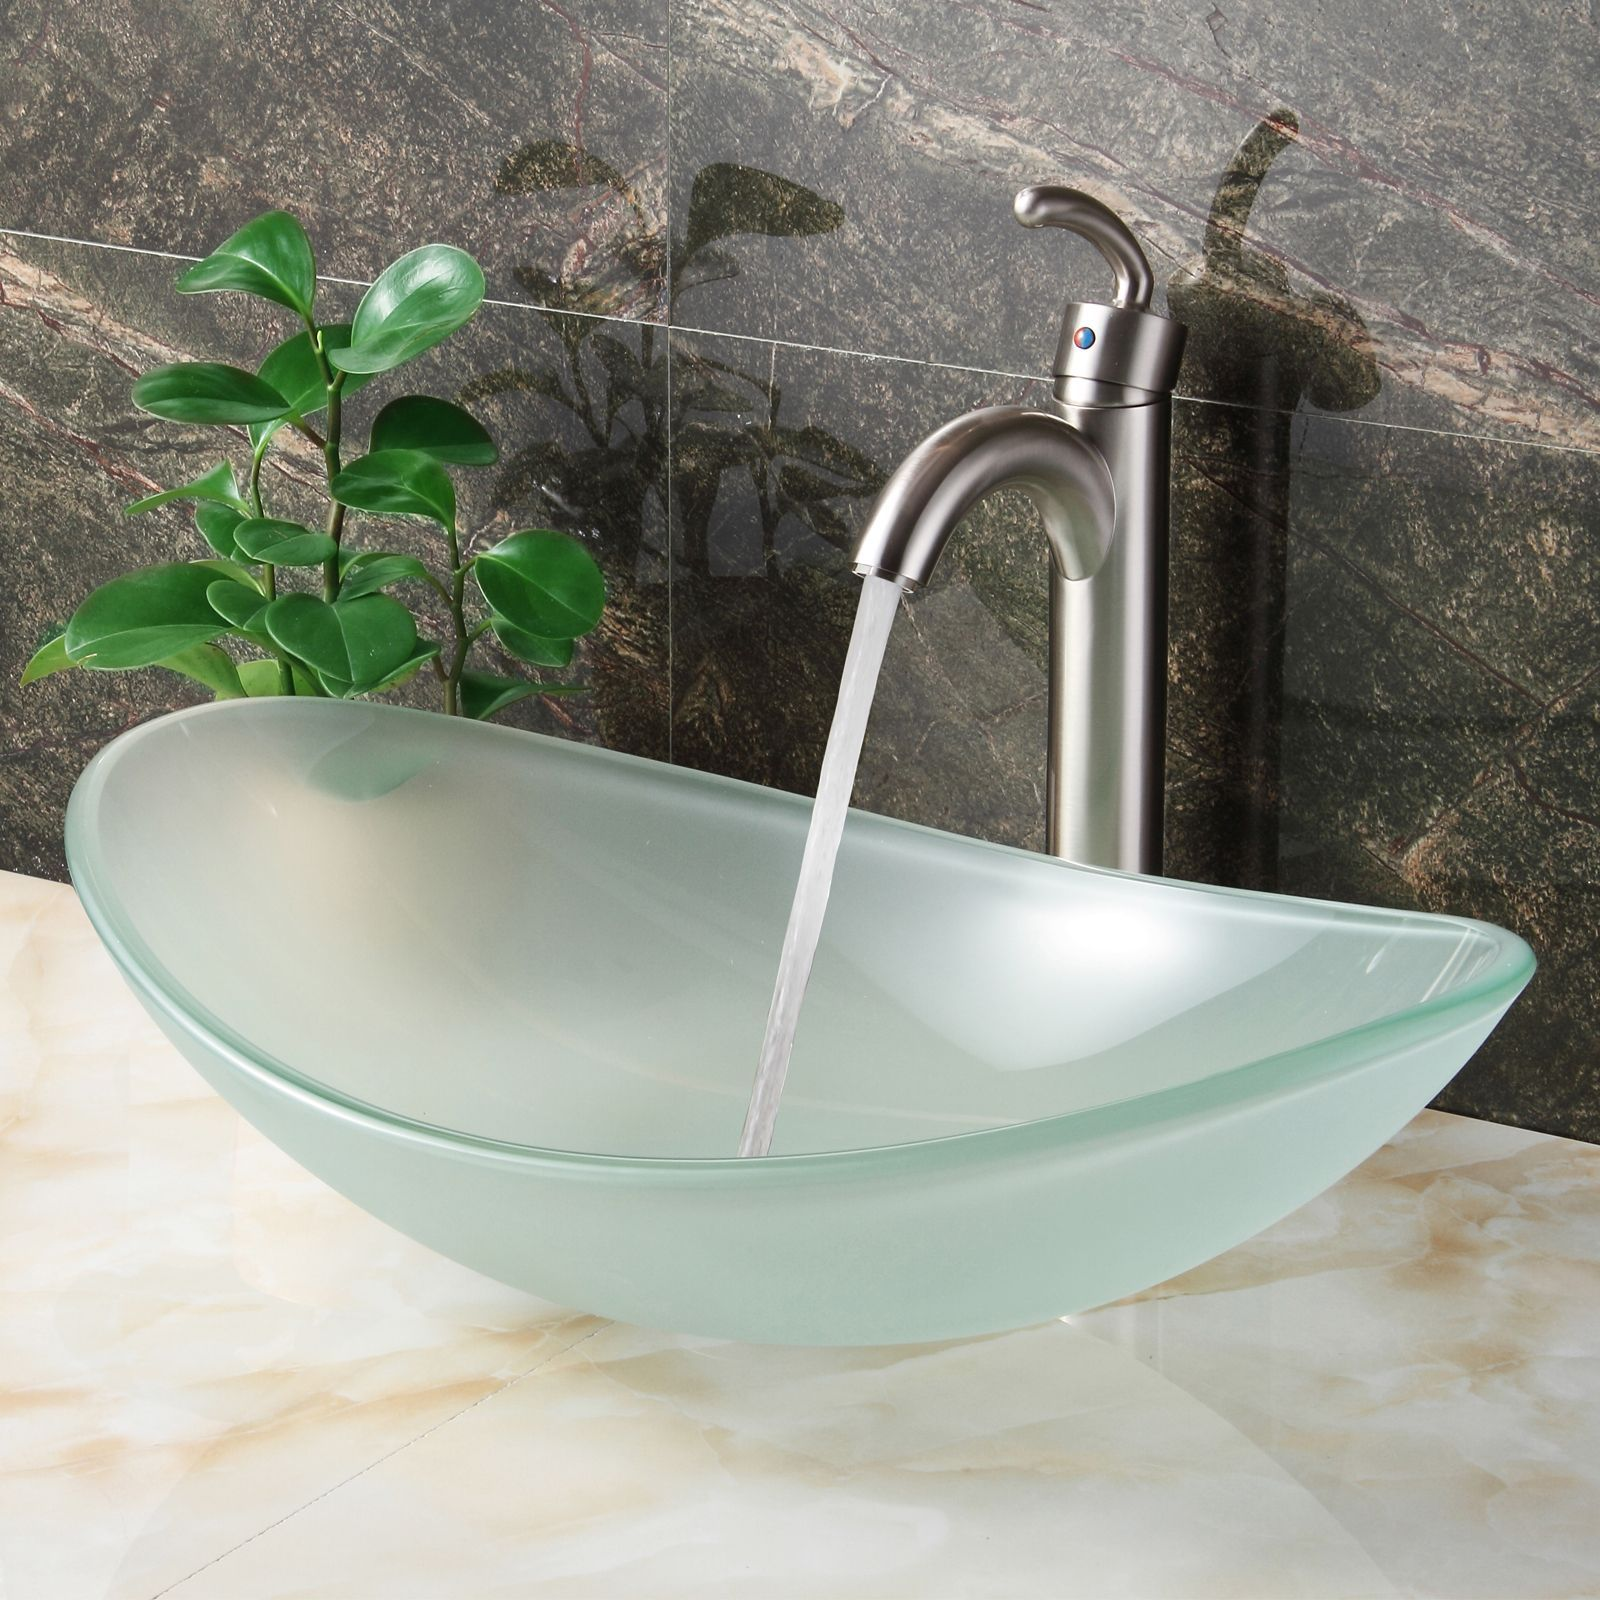 Elite Oval Shape Frosted Tempered Bathroom Glass Vessel Sink and